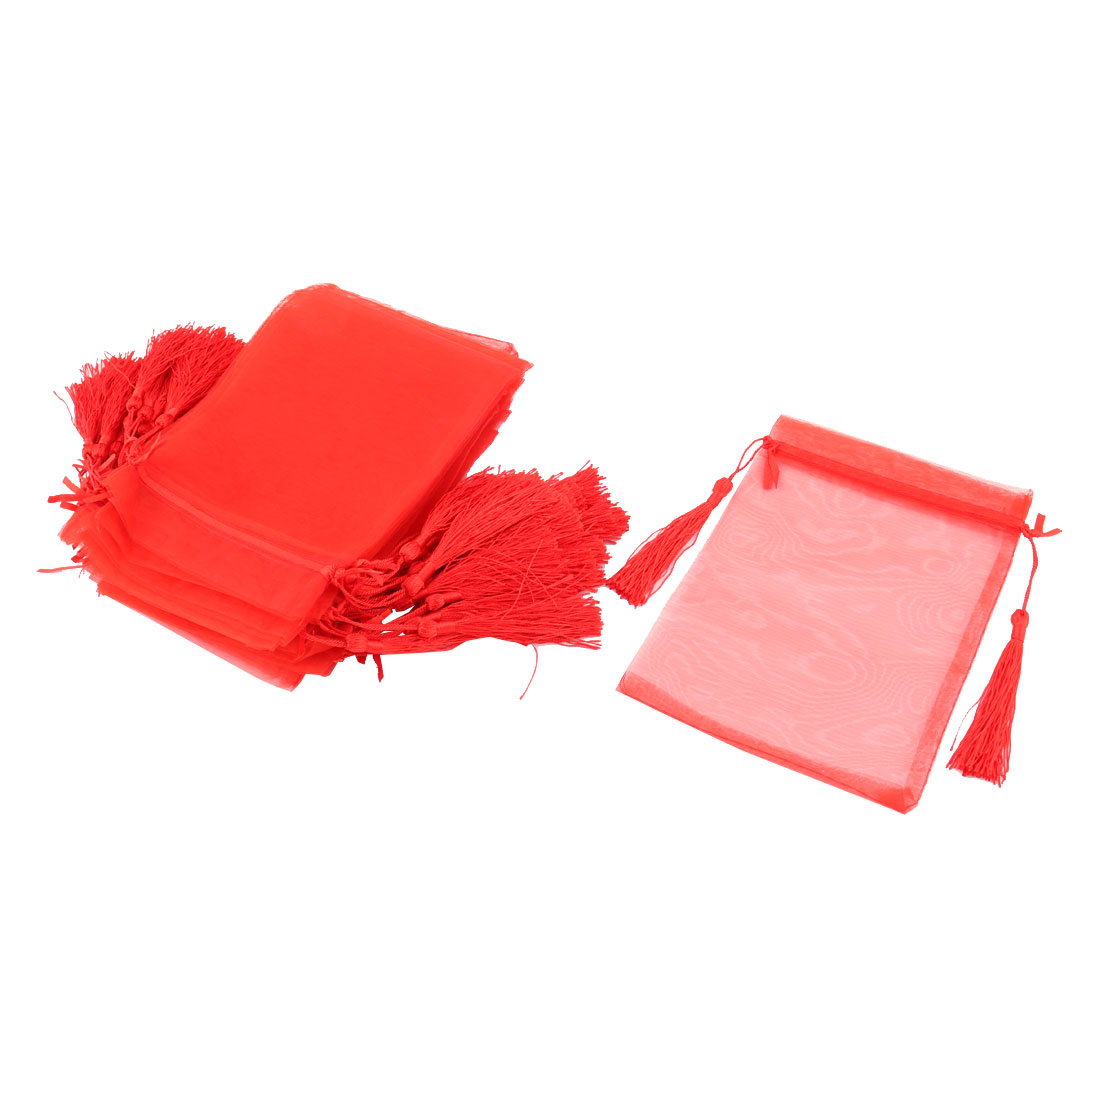 Candy Jewelry Pouch Wedding Favor Organza Gift Bag 13 x 18cm 25 Pcs